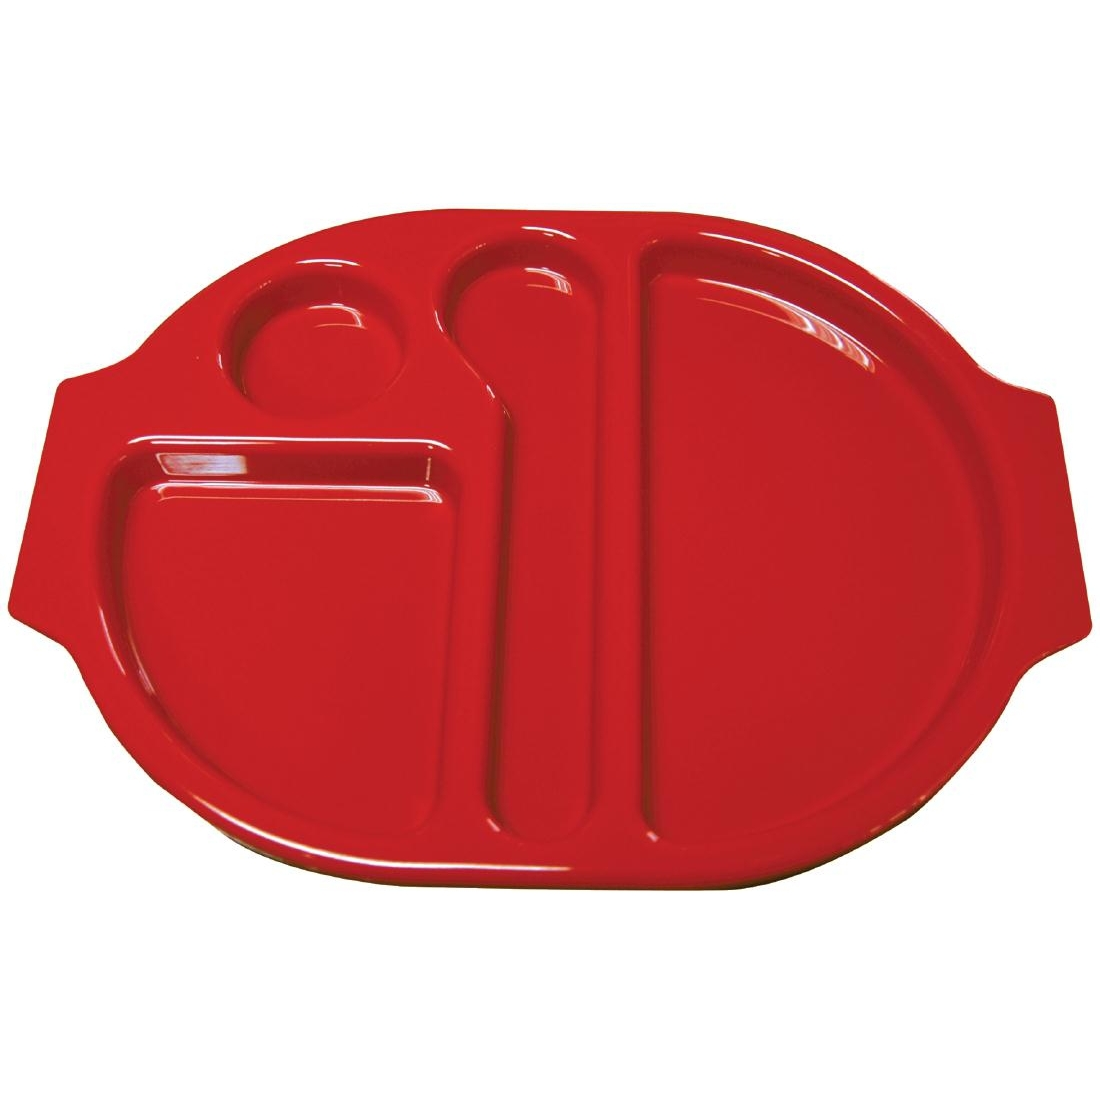 Kristallon Small Polycarbonate Compartment Food Trays Red